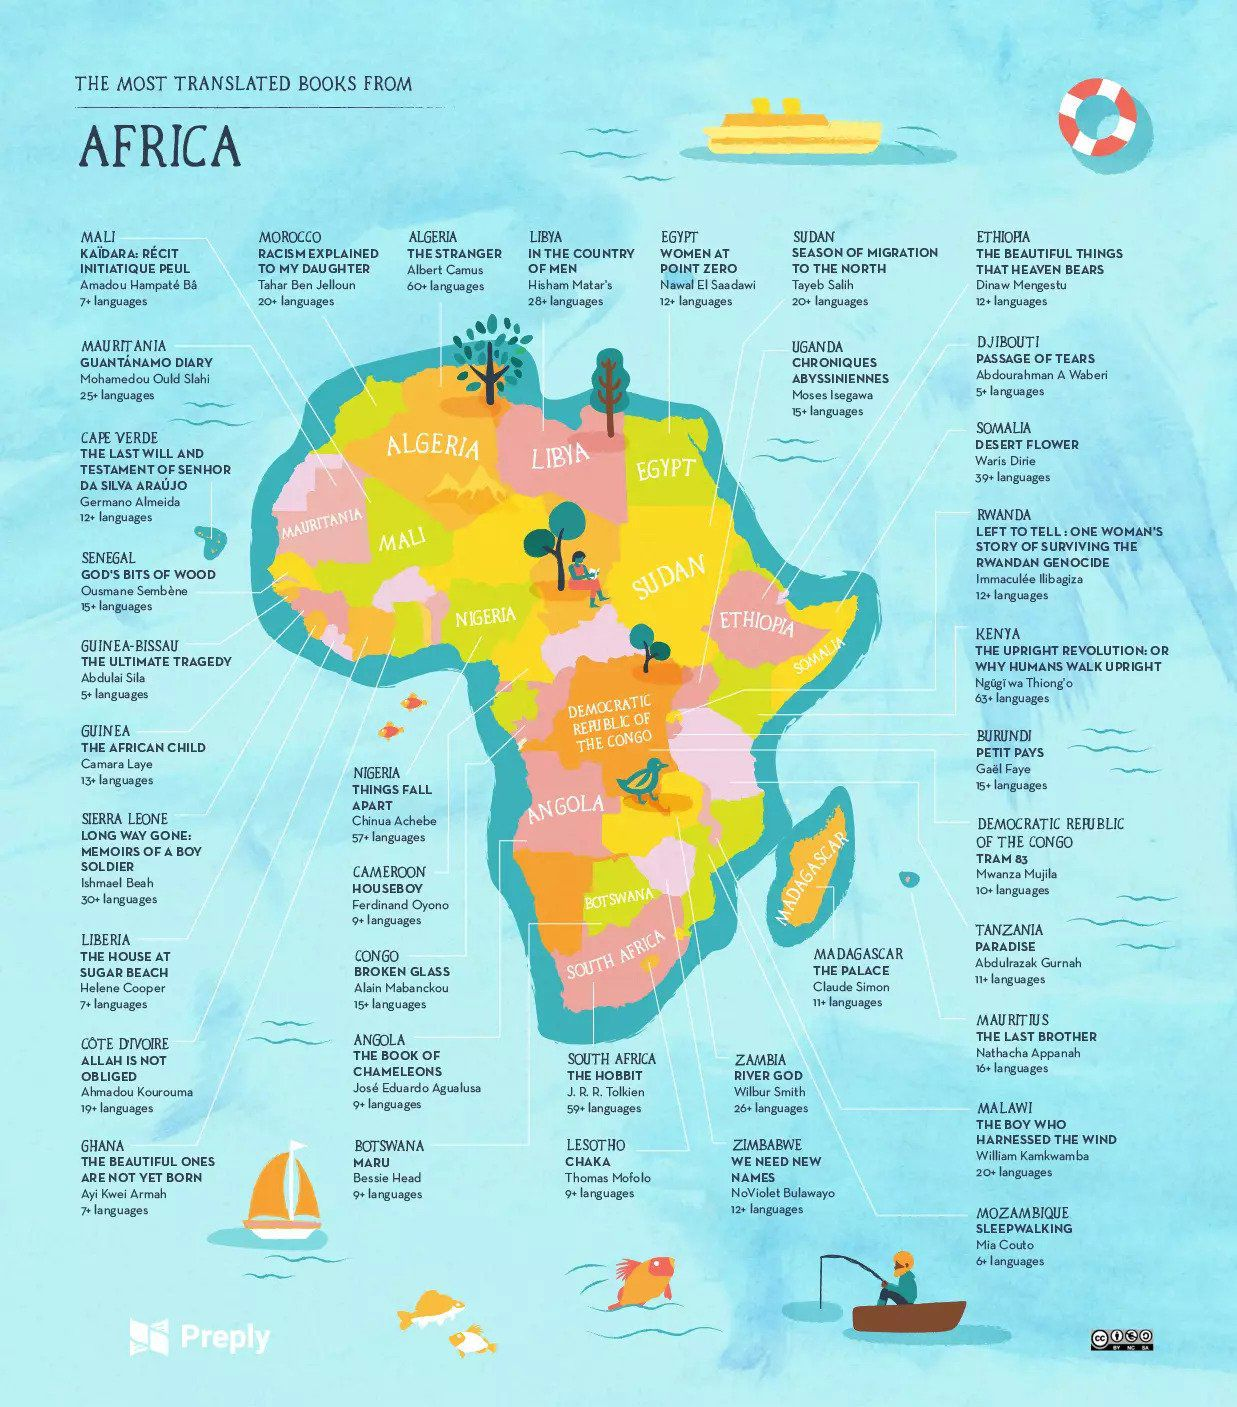 most translated books from Africa map